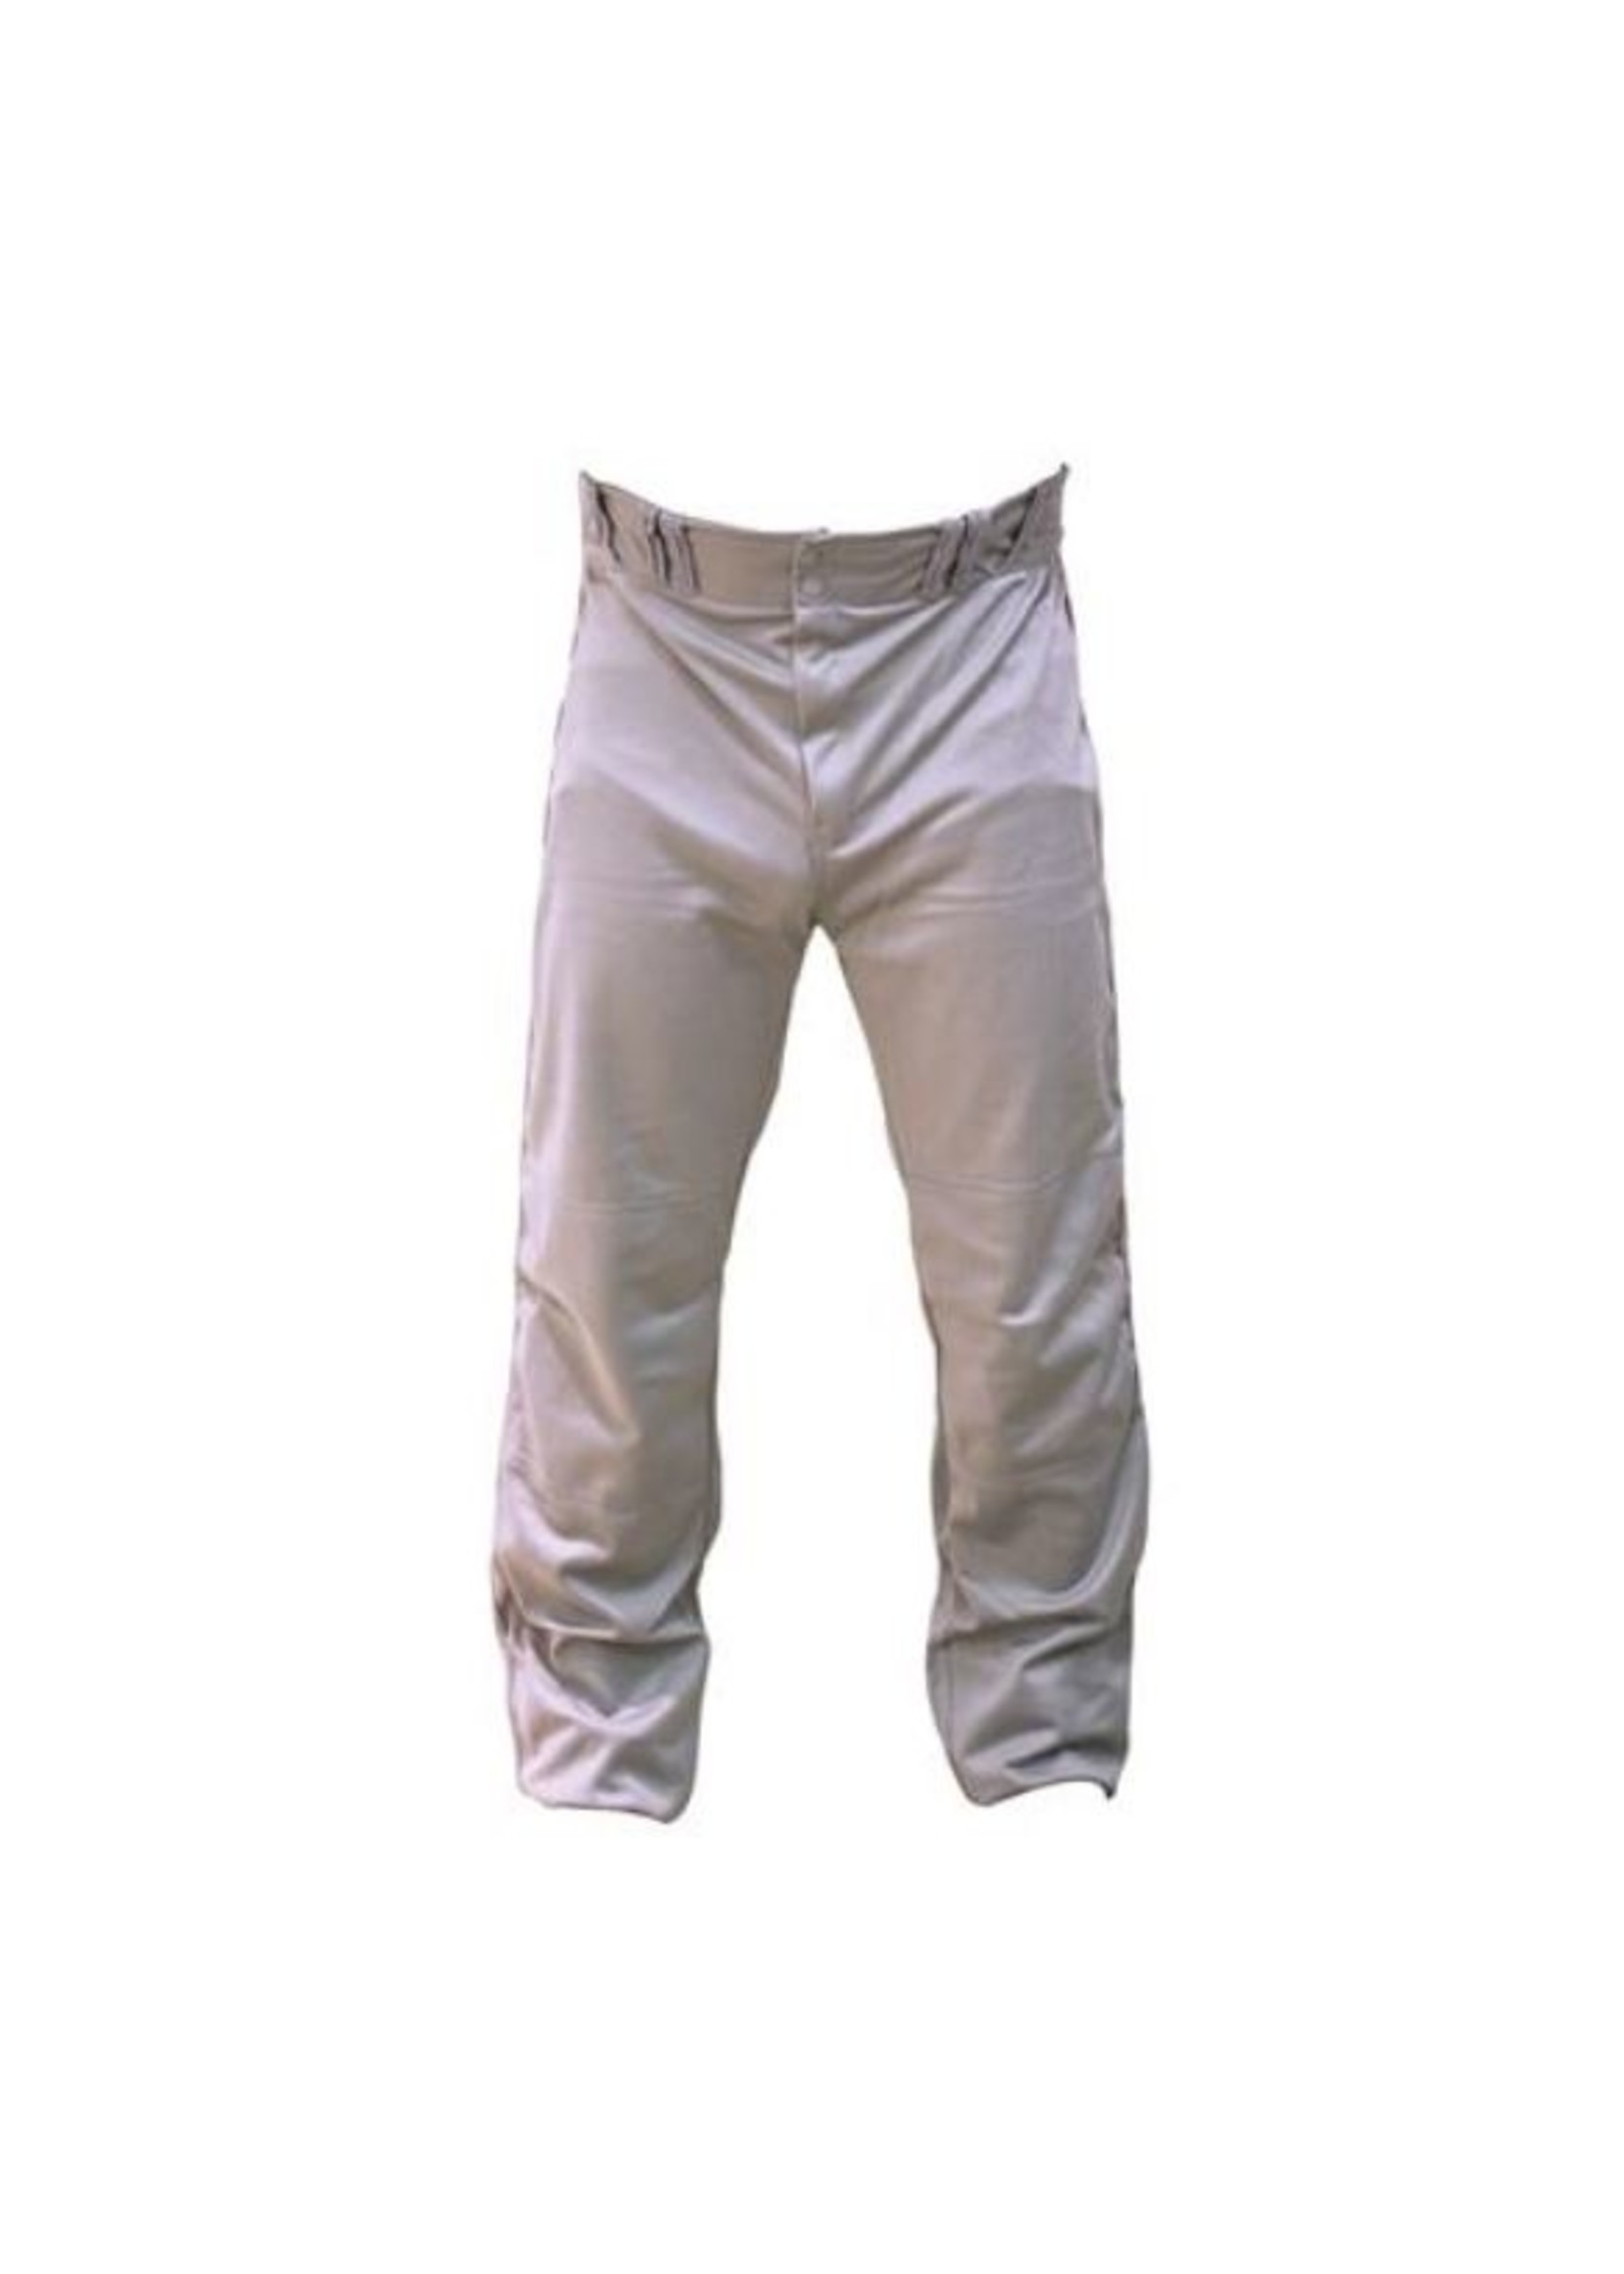 Louisville (Canada) LOUISVILLE STOCK PANT WITH PIPING SR BASEBALL PANTS